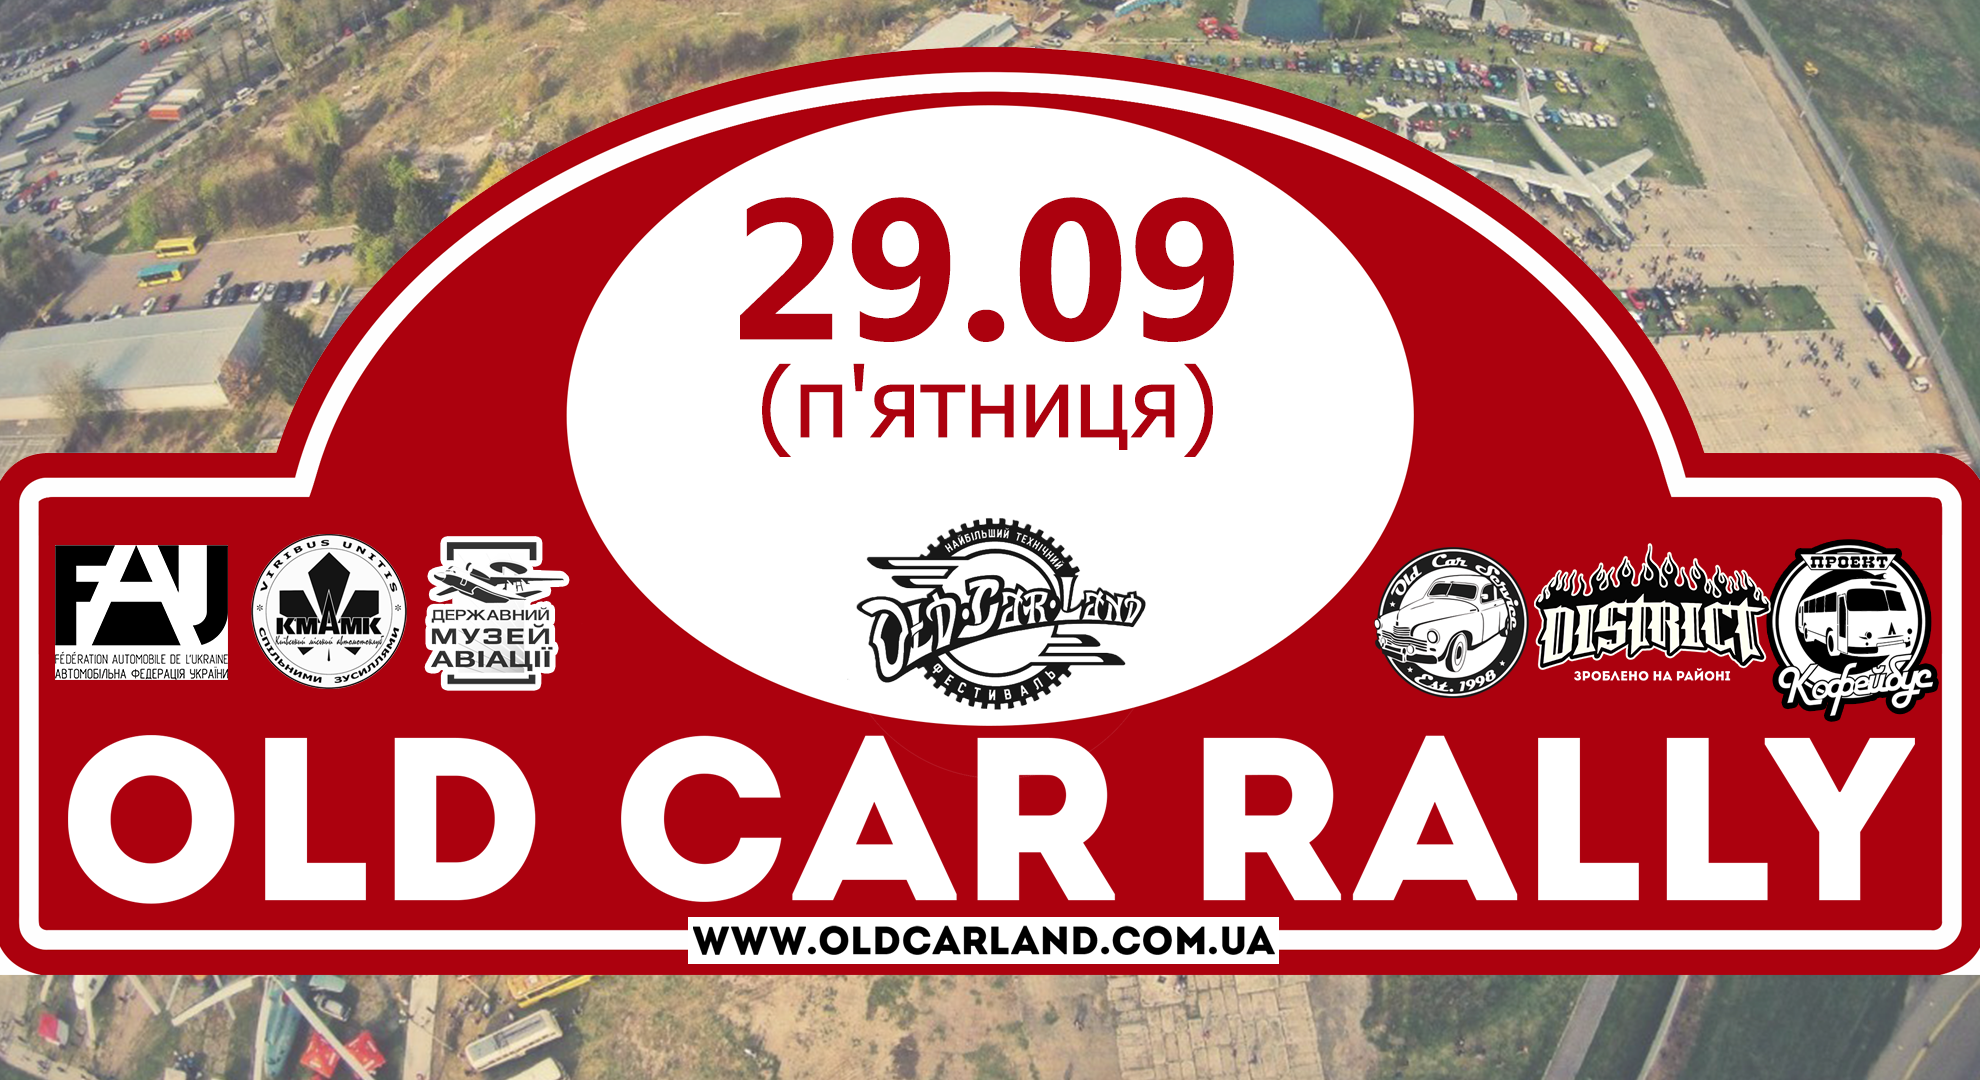 Old Car Rally